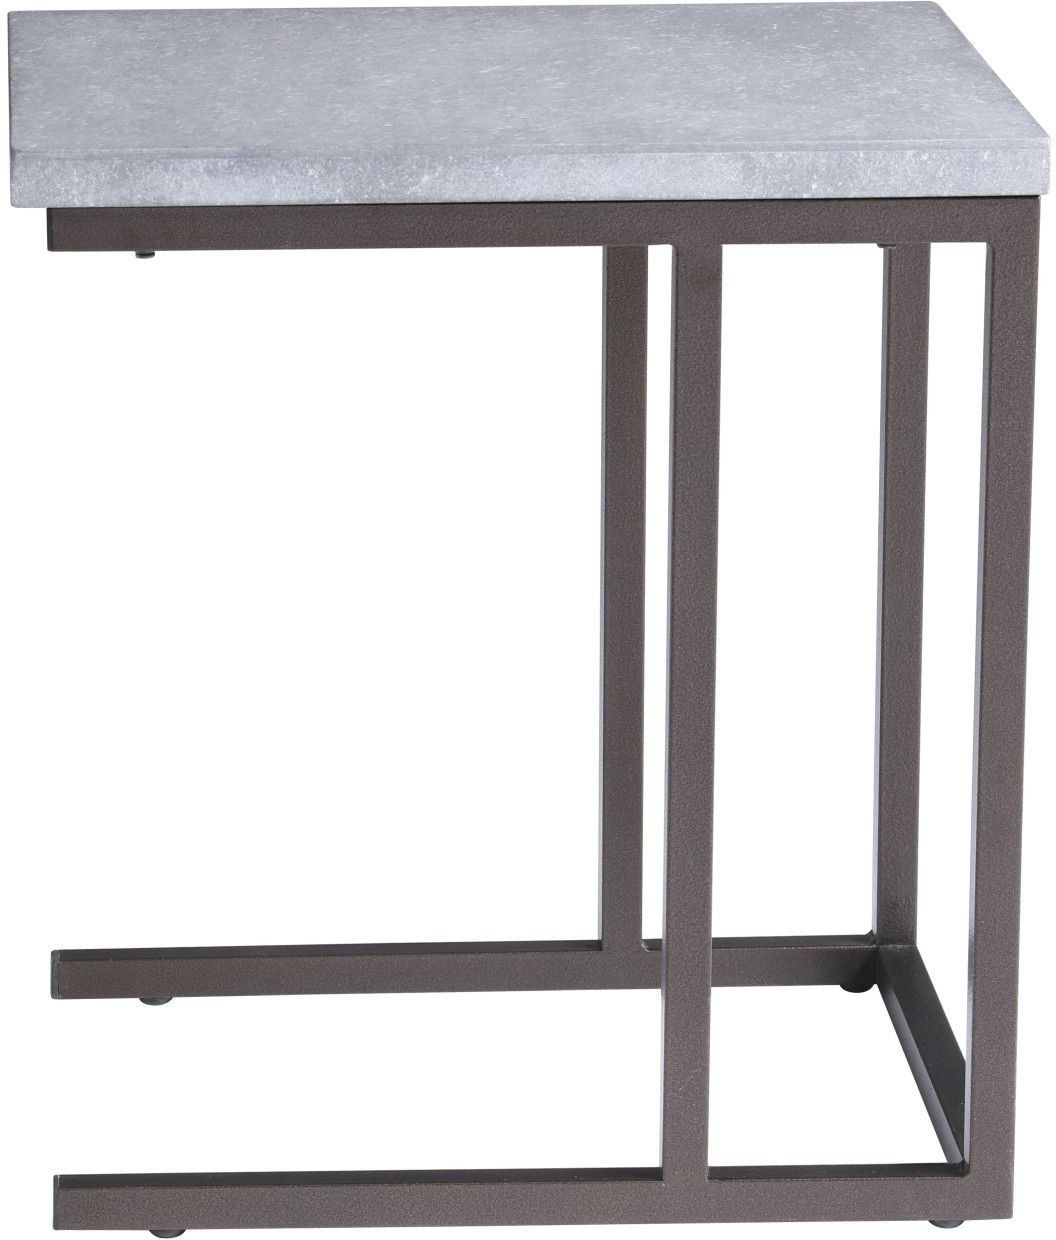 Stoneworks merlot natural stone laptop table from emerald for Environmental stoneworks pricing